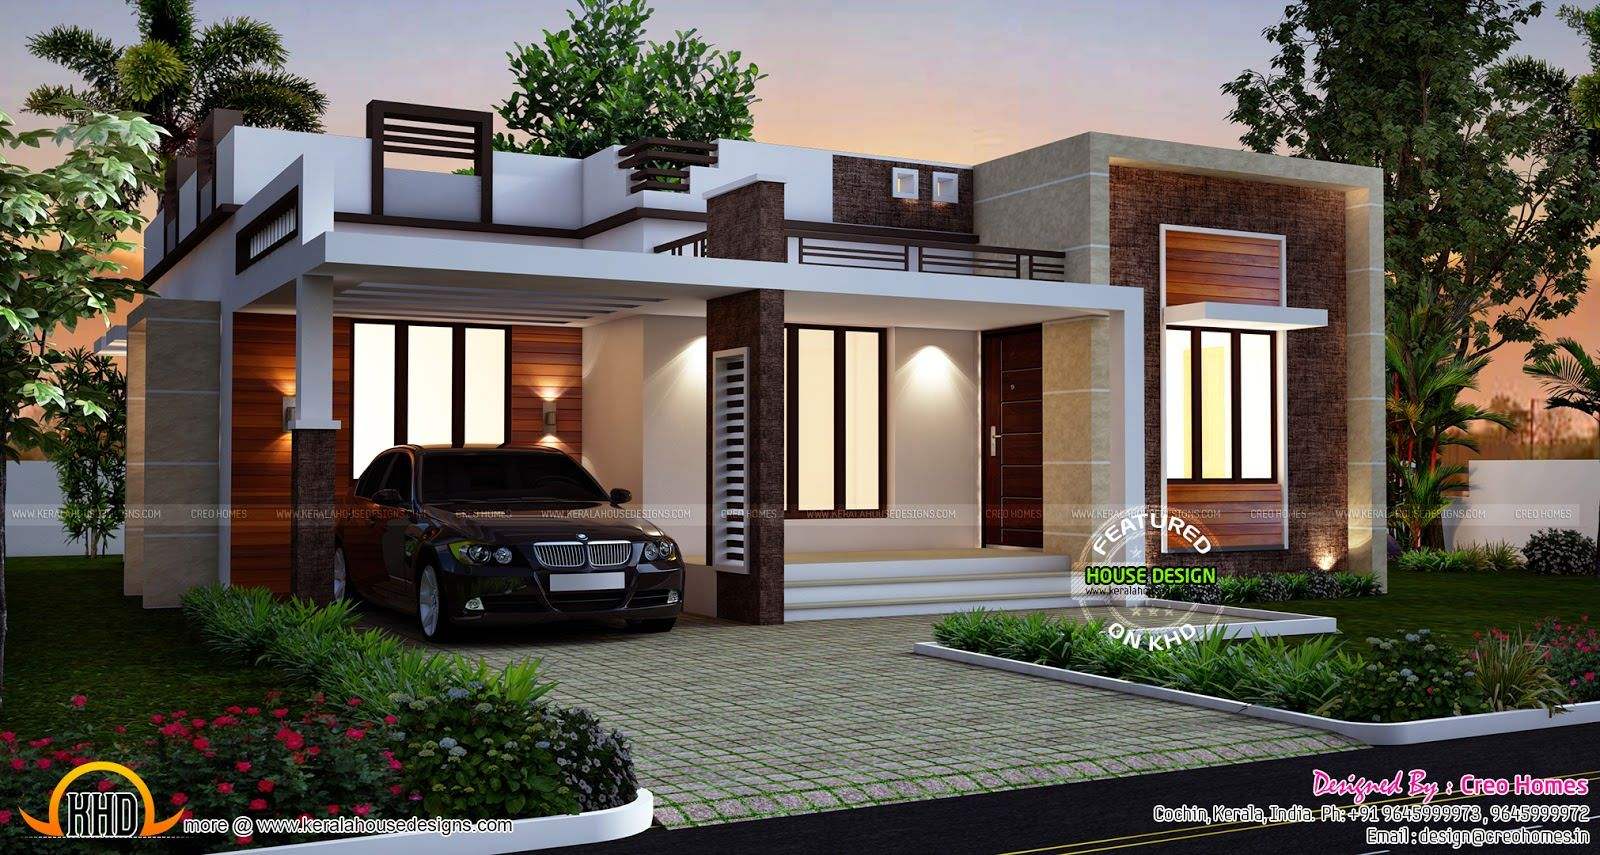 designs homes design single story flat roof house plans. Interior Design Ideas. Home Design Ideas